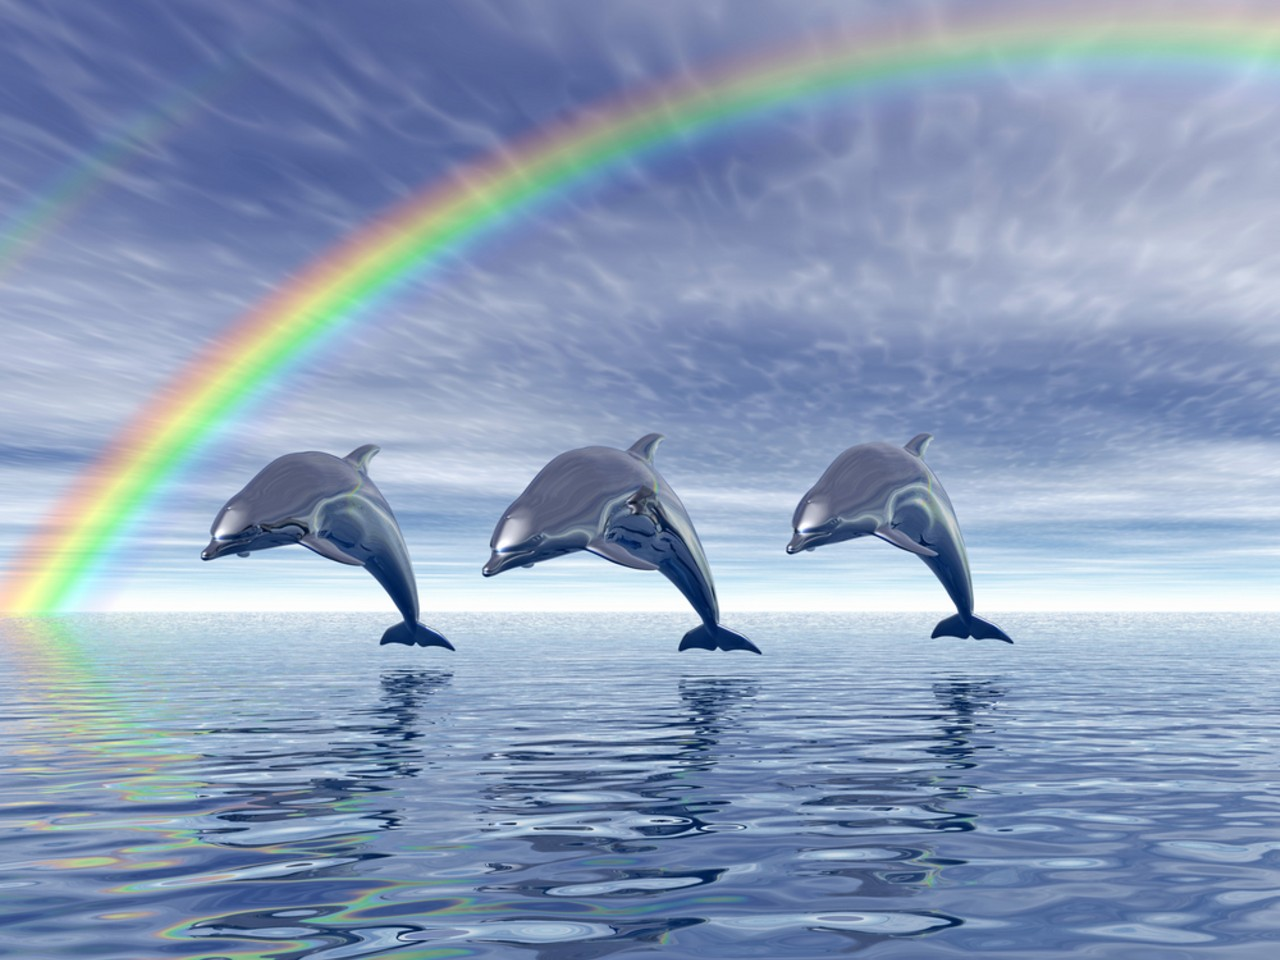 Dolphin Wallpaper 8038 Hd Wallpapers in Animals   Imagescicom 1280x960